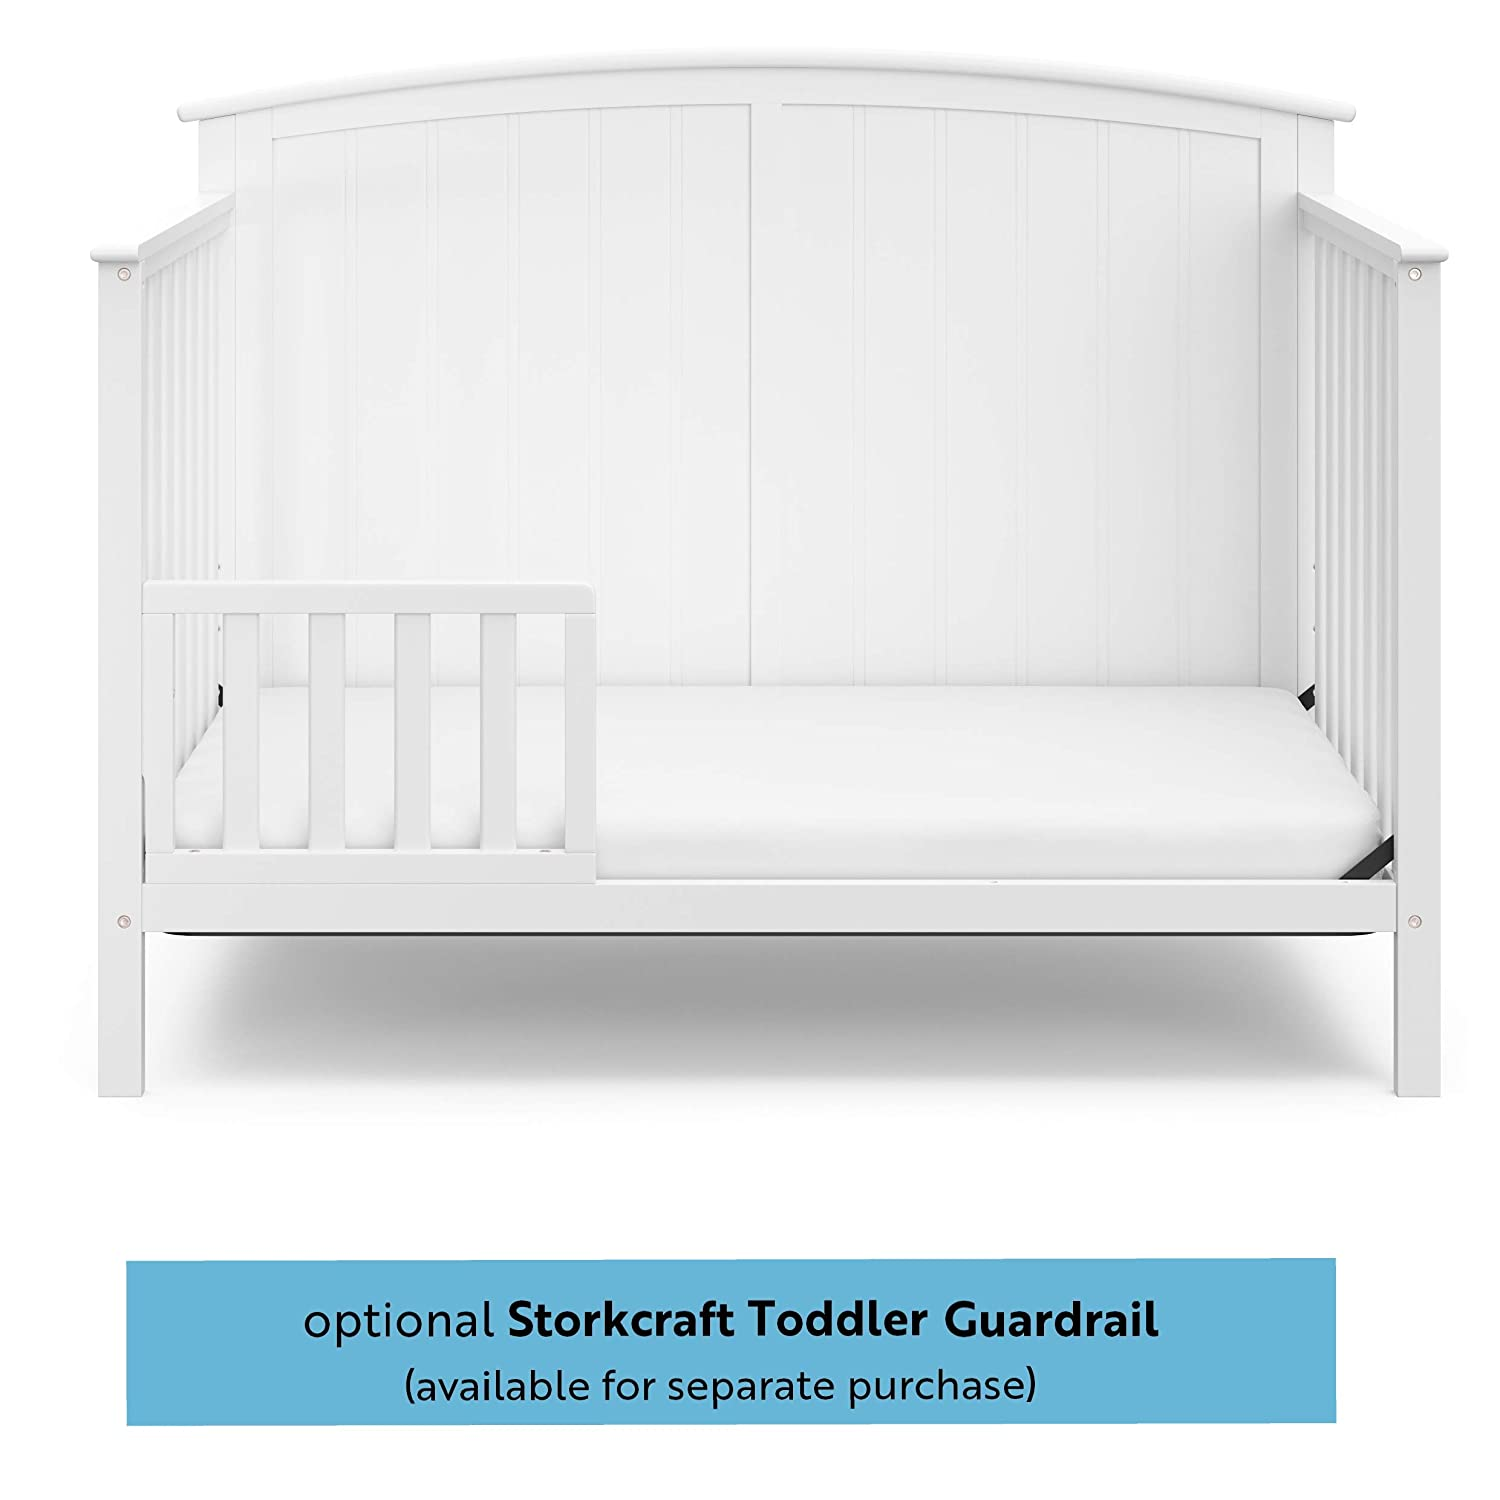 Easily Converts to Toddler Bed Day Bed or Full Bed StorkCraft Steveston 4-in-1 Convertible Crib Some Assembly Required Pebble Gray Three Position Adjustable Height Mattress Mattress Not Included